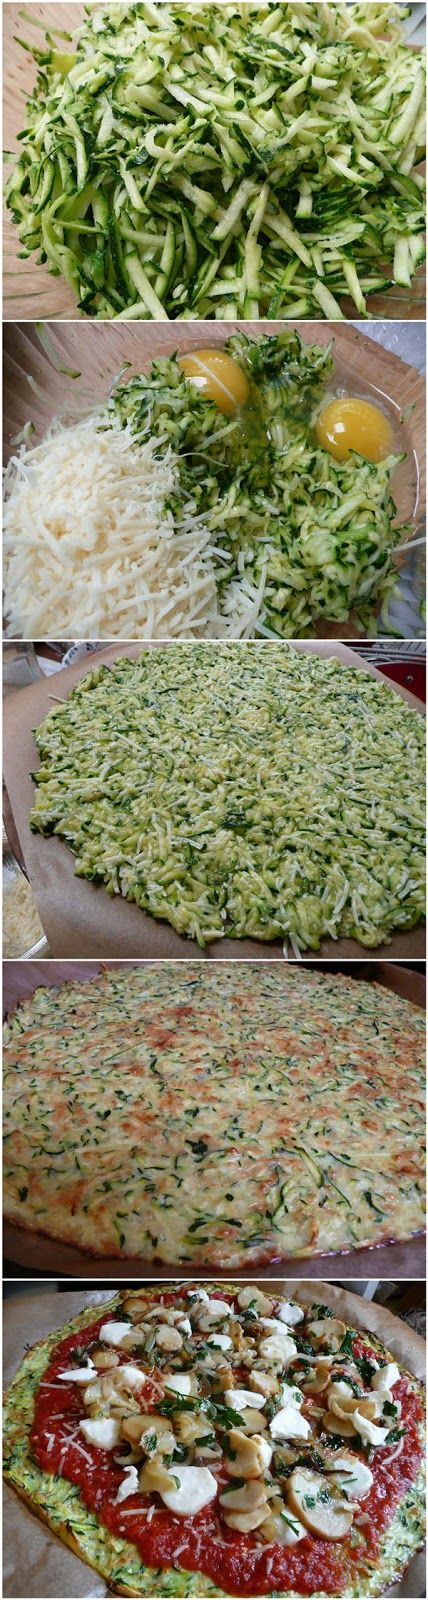 Zucchini Pizza Crust! www.draxe.com #health #food #recipe